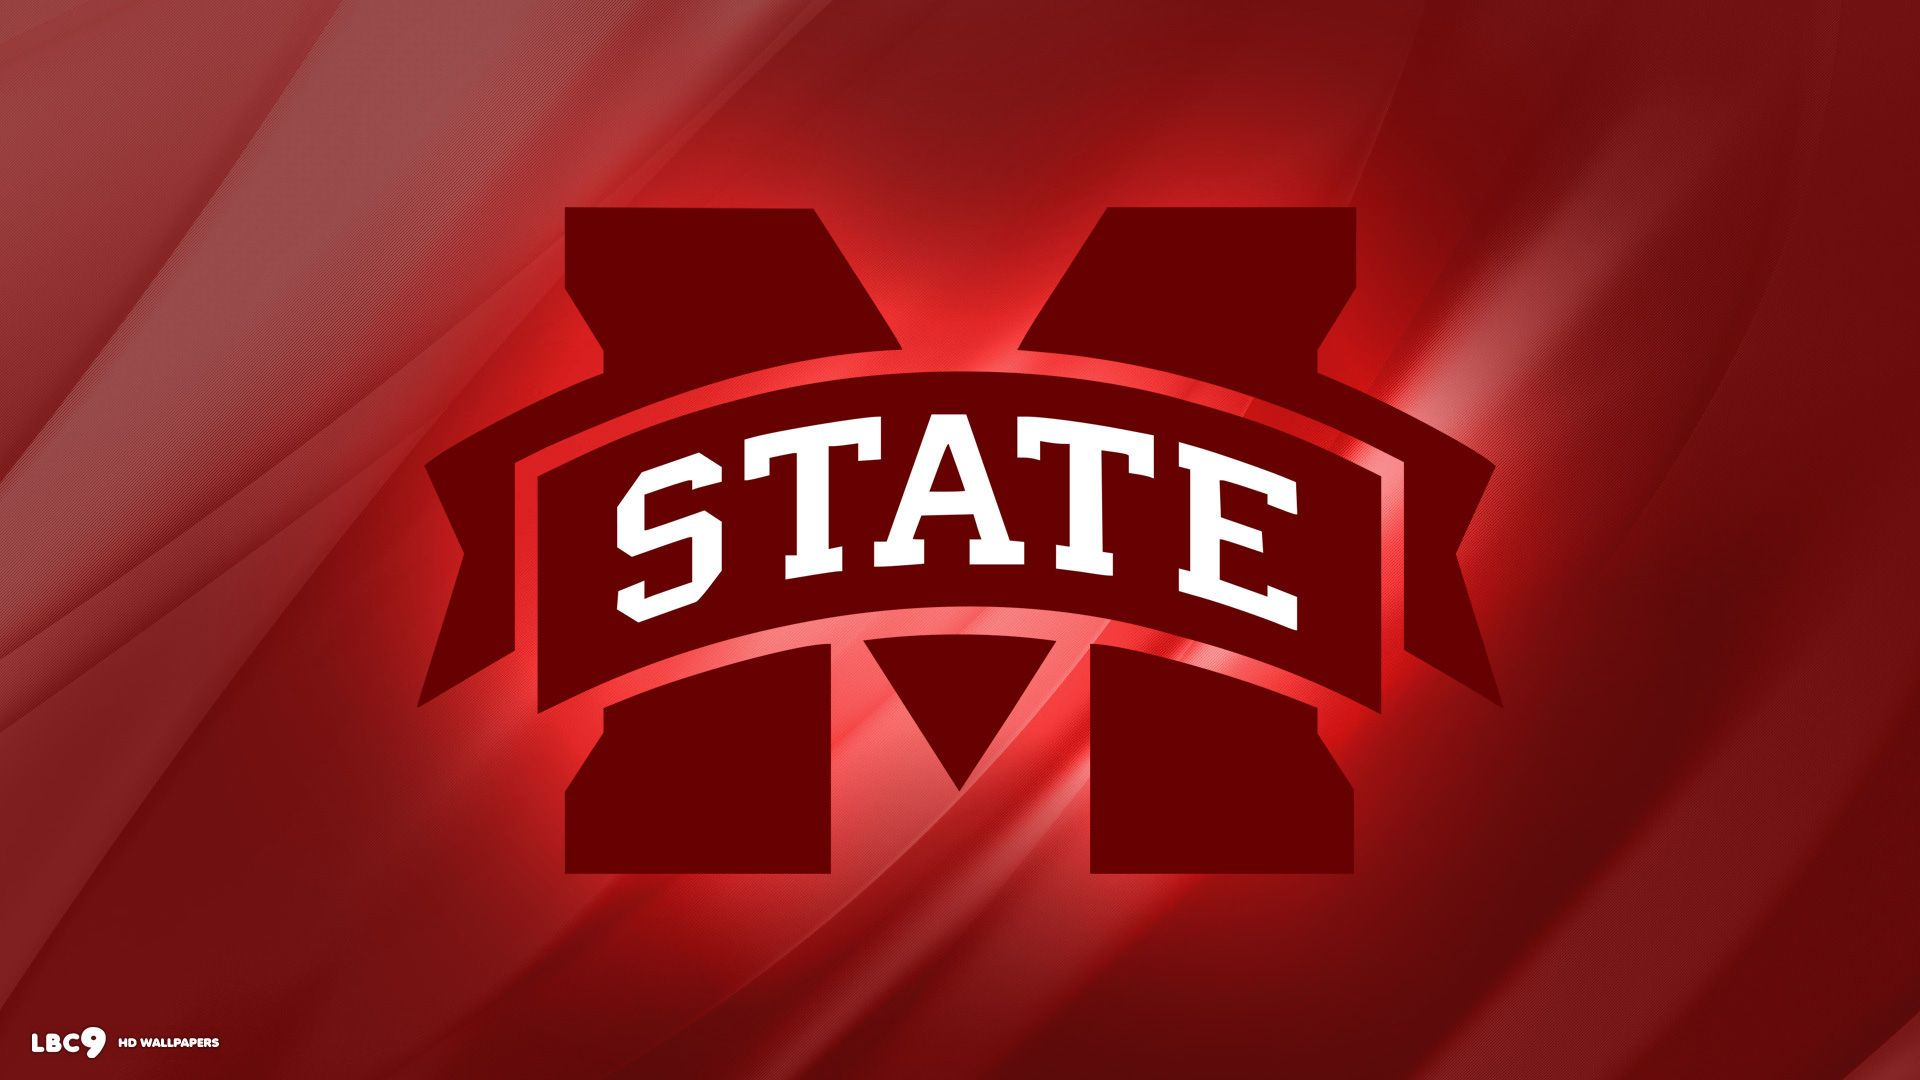 Msu Bulldogs Mississippi State Bulldog Wallpaper Mississippi State Bulldogs